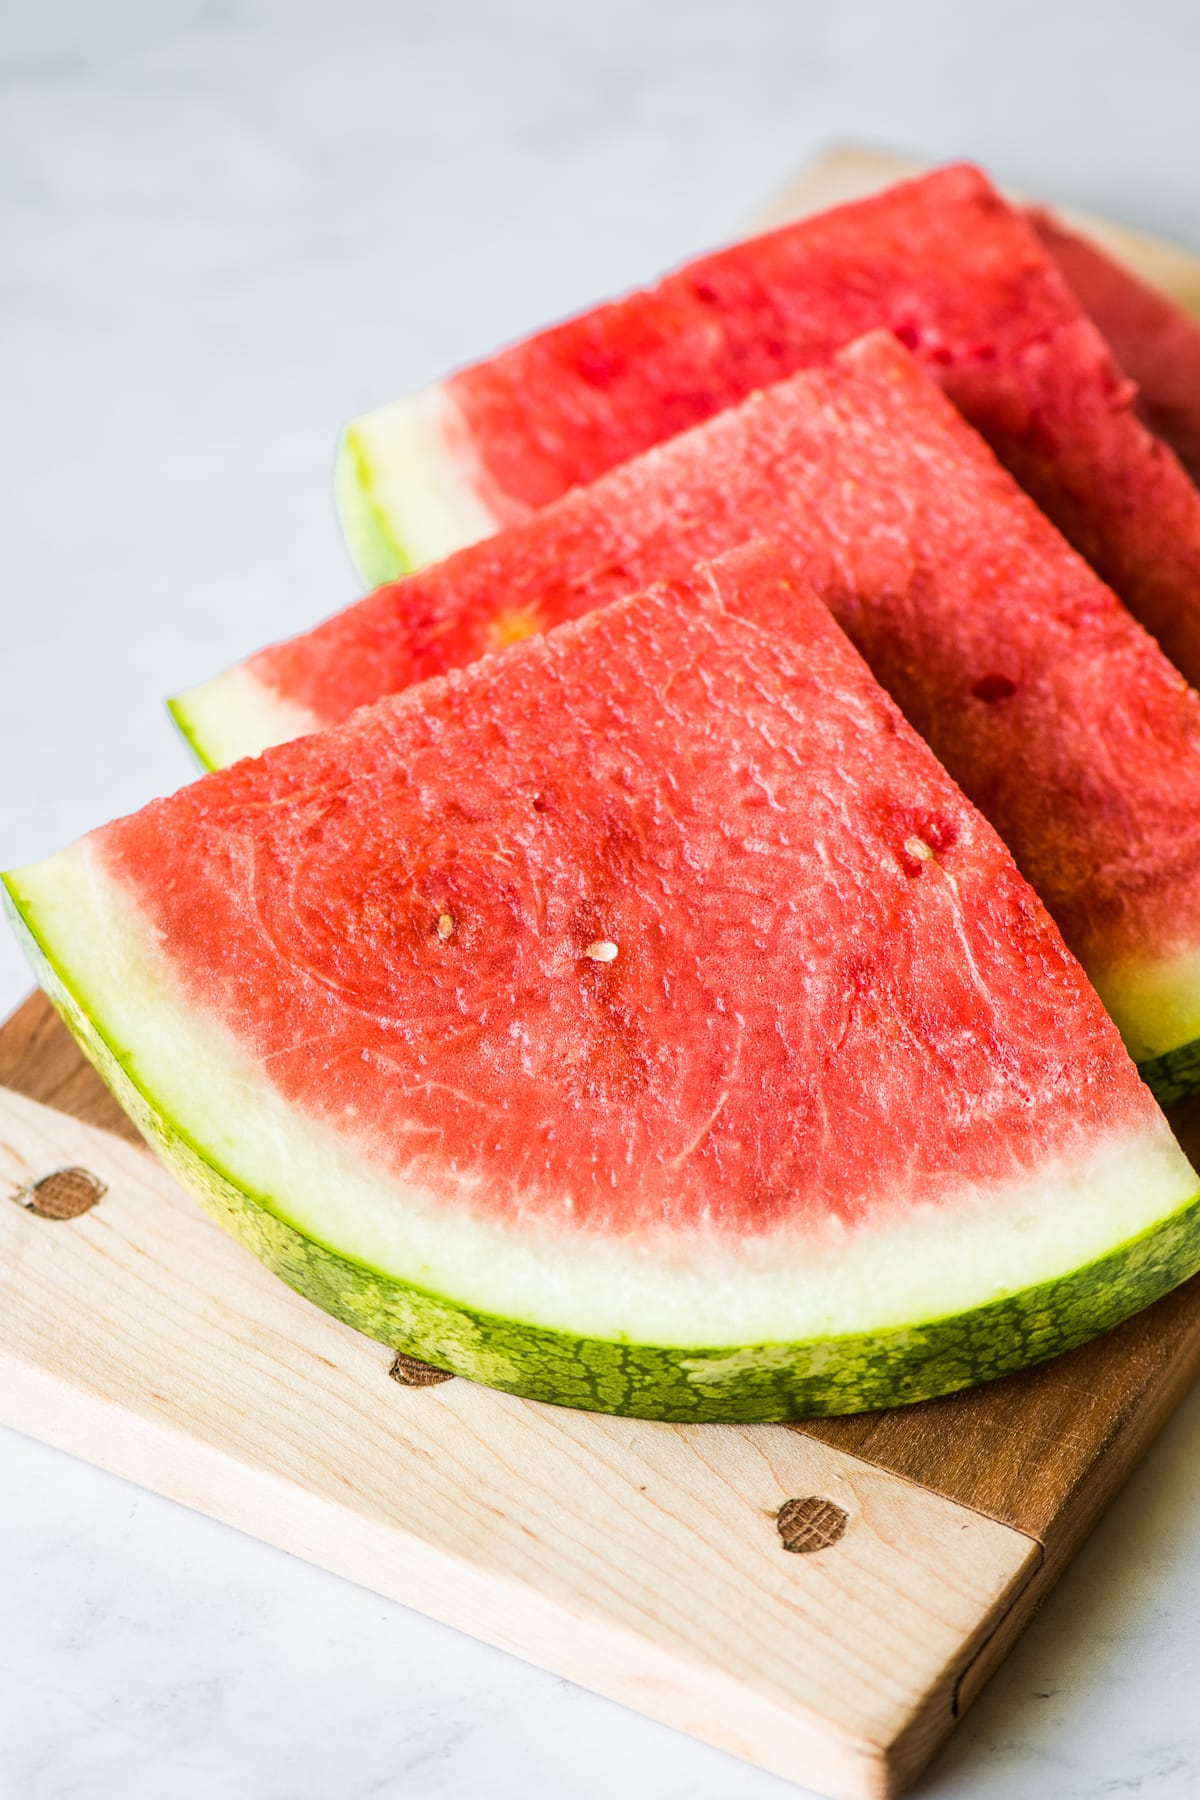 Slices of fresh watermelon on a cutting board.